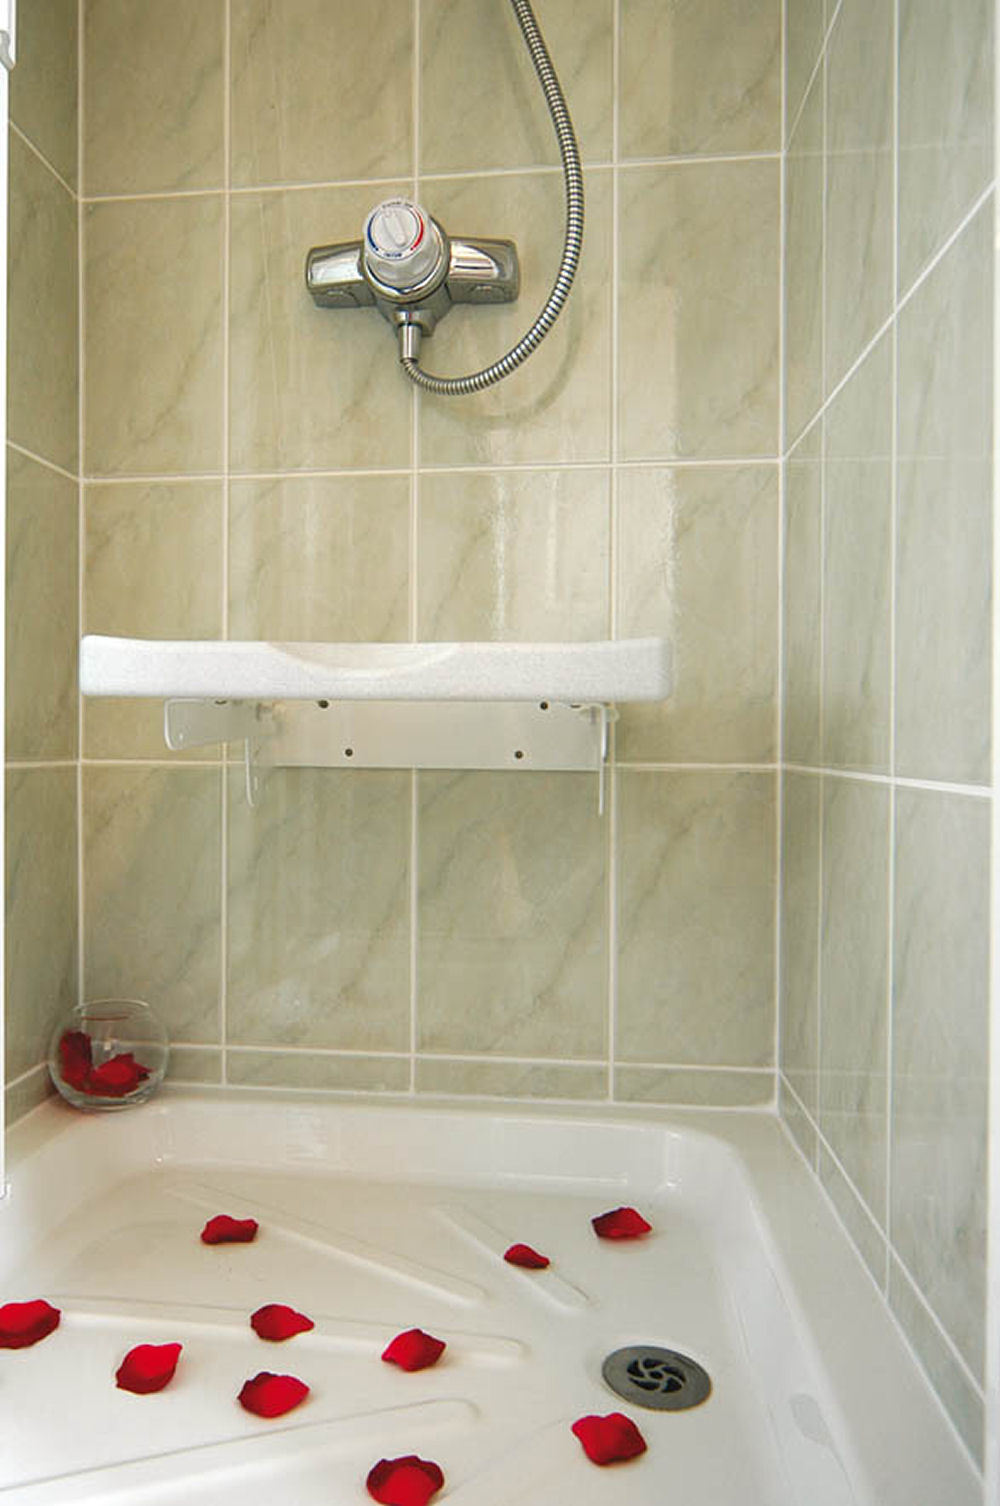 Drop Down Shower Seat - Shower Seats (Wall Mounted) - Benches ...